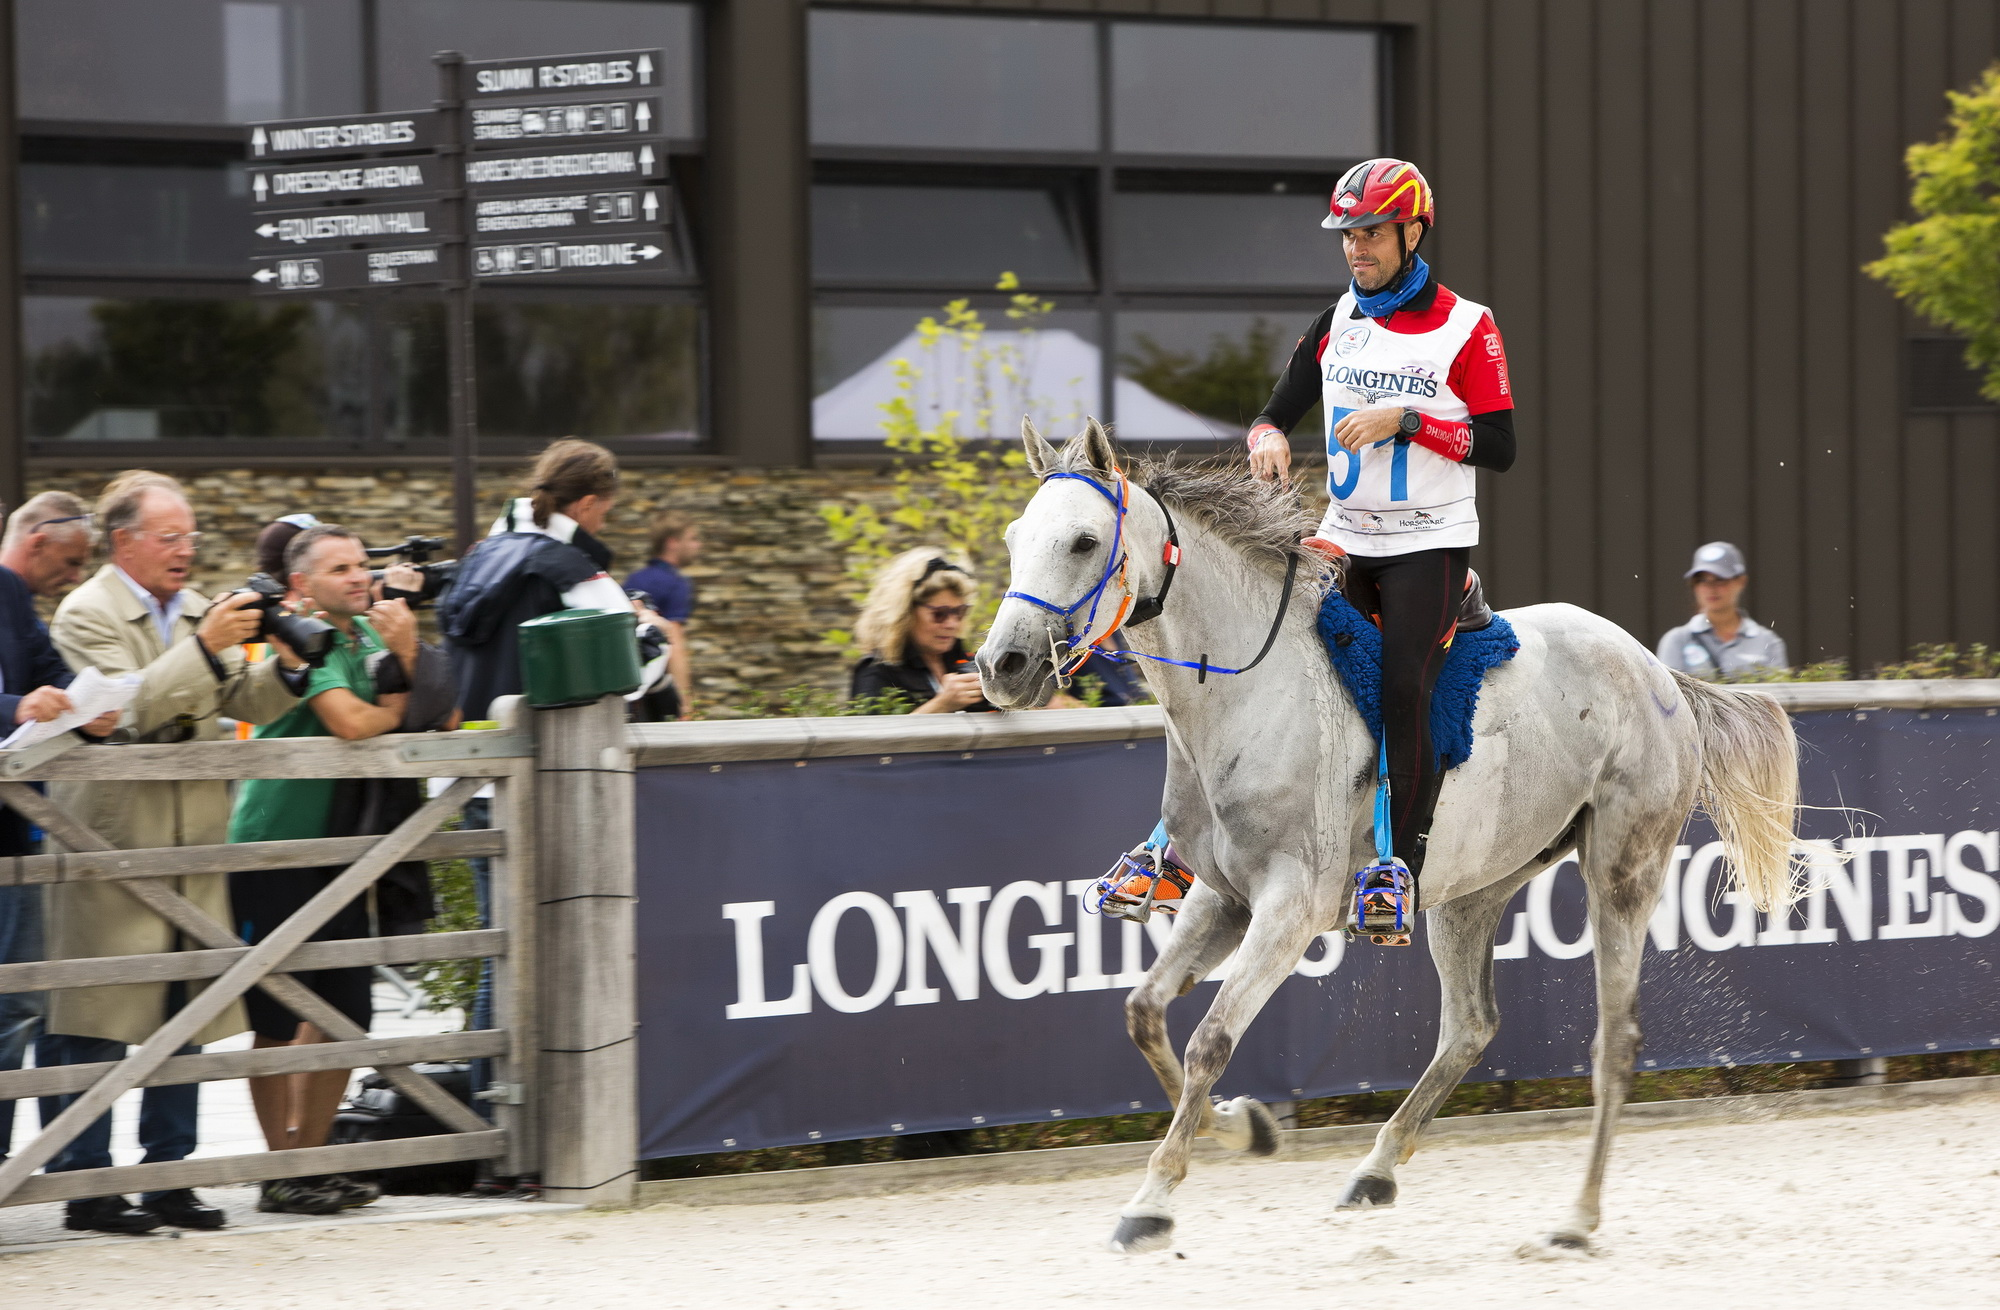 In a day of weather that changed as often as the ride leaders, Spain's Jaume Punti Dachs captured individual gold and led Spain to the team title at the Longines FEI World Endurance Championships 2016 in Samorin (SLK). (Miro Nota)